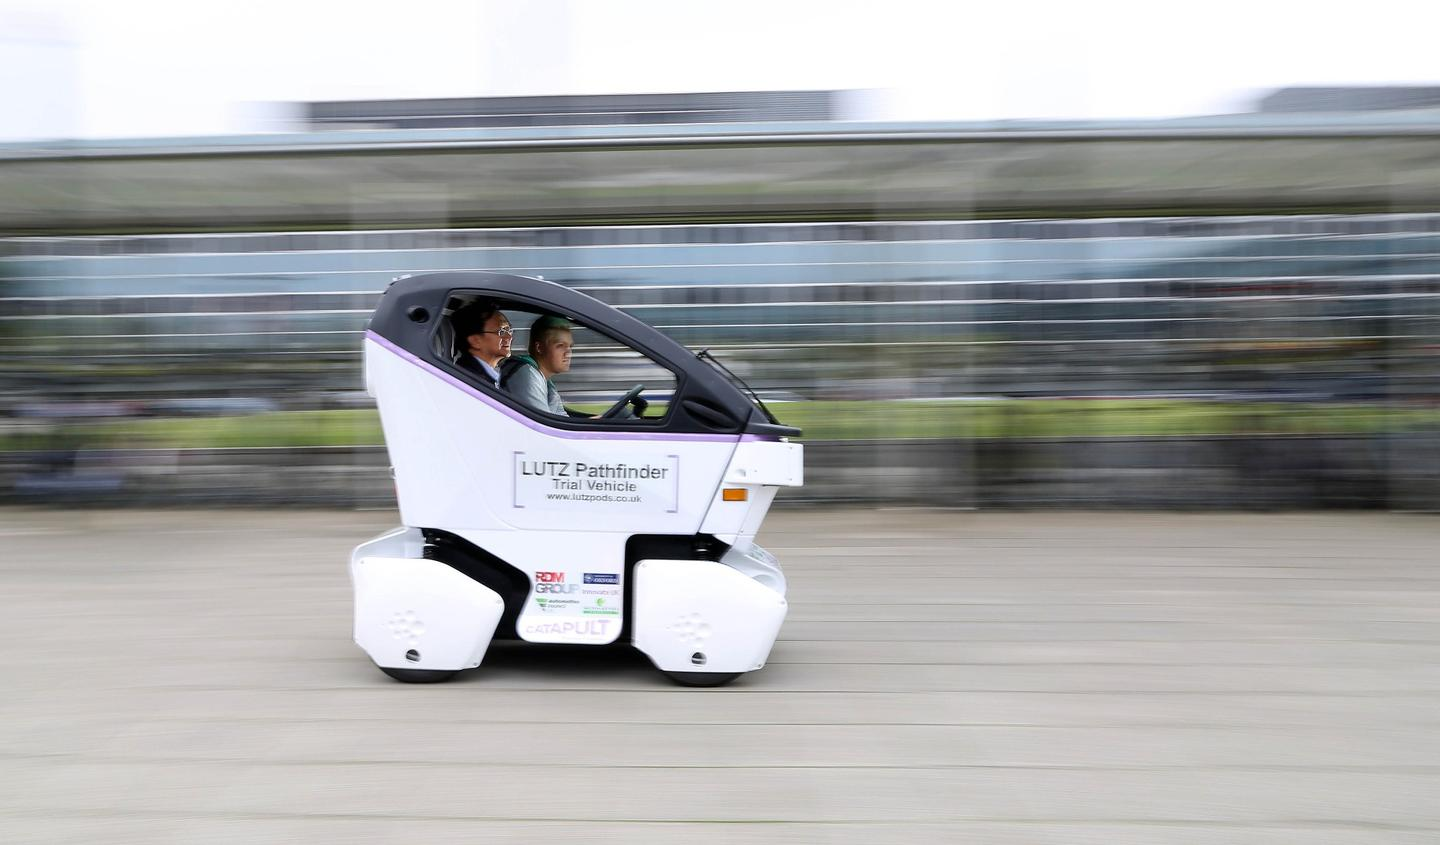 The Lutz Pathfinder has a maximum speed of 15 mph (24km/h)